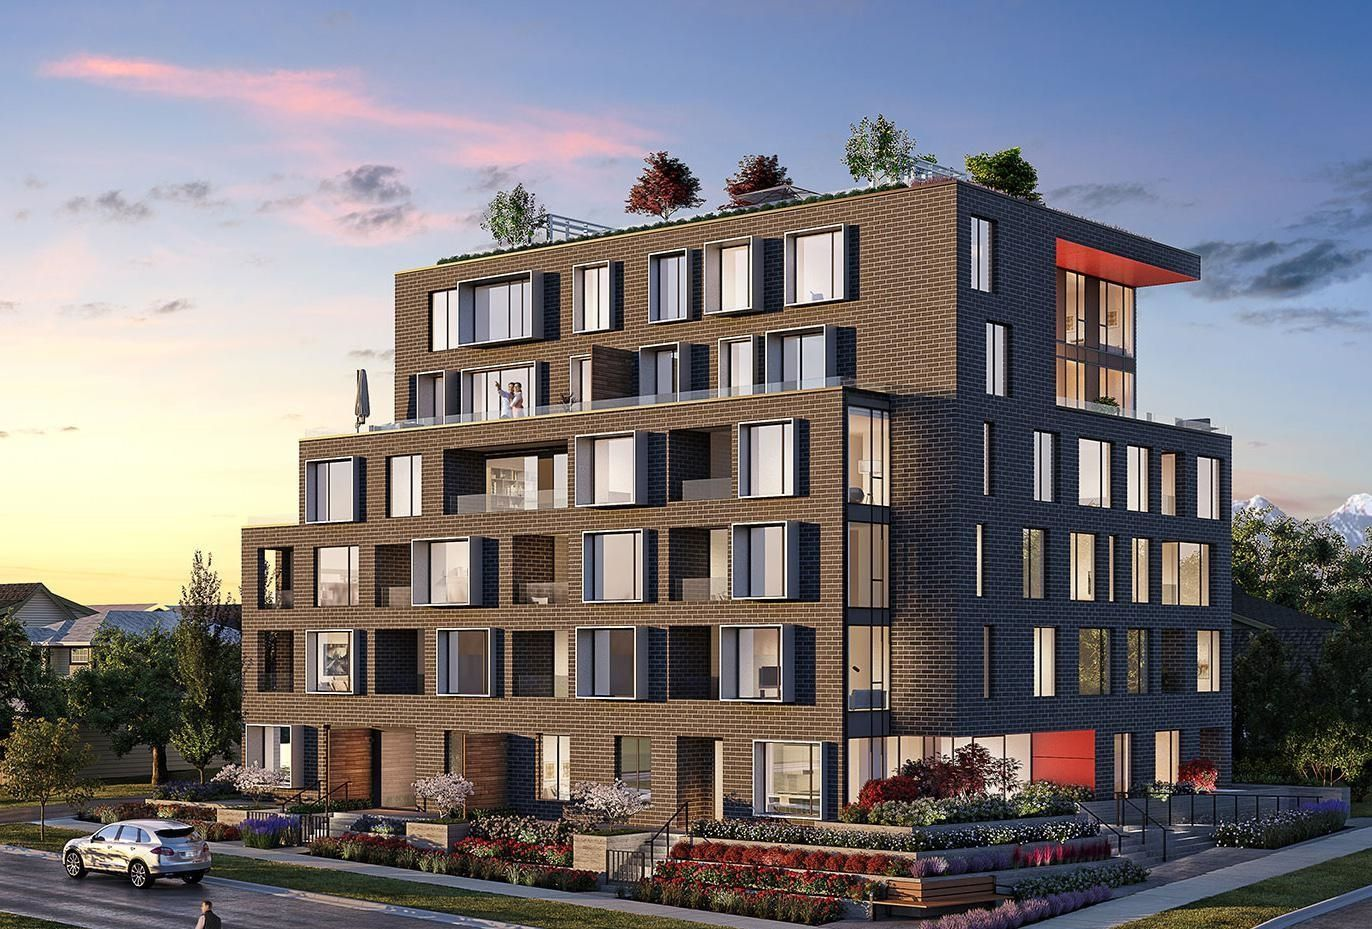 Main Photo: 205 7777 CAMBIE Street in Vancouver: Marpole Condo for sale (Vancouver West)  : MLS®# R2615887